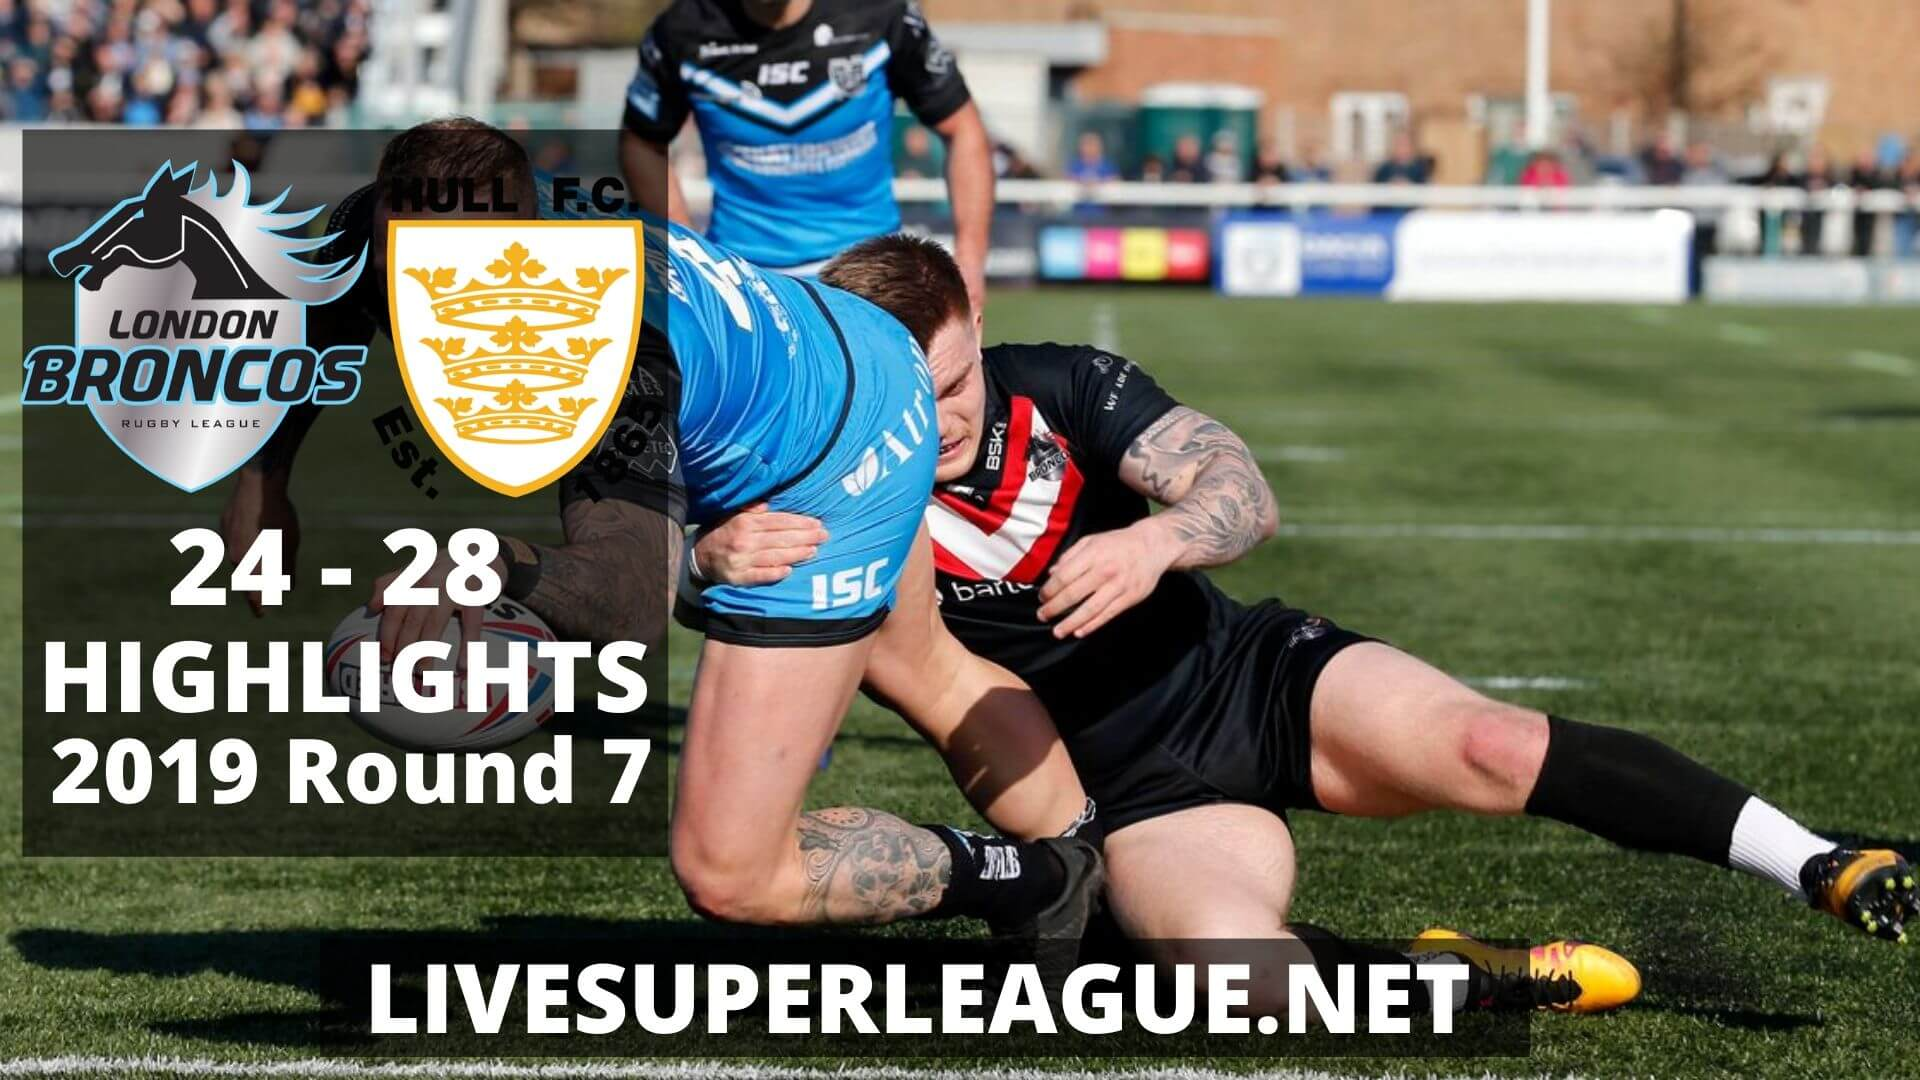 London Broncos vs Hull FC Highlights 2019 Round 7